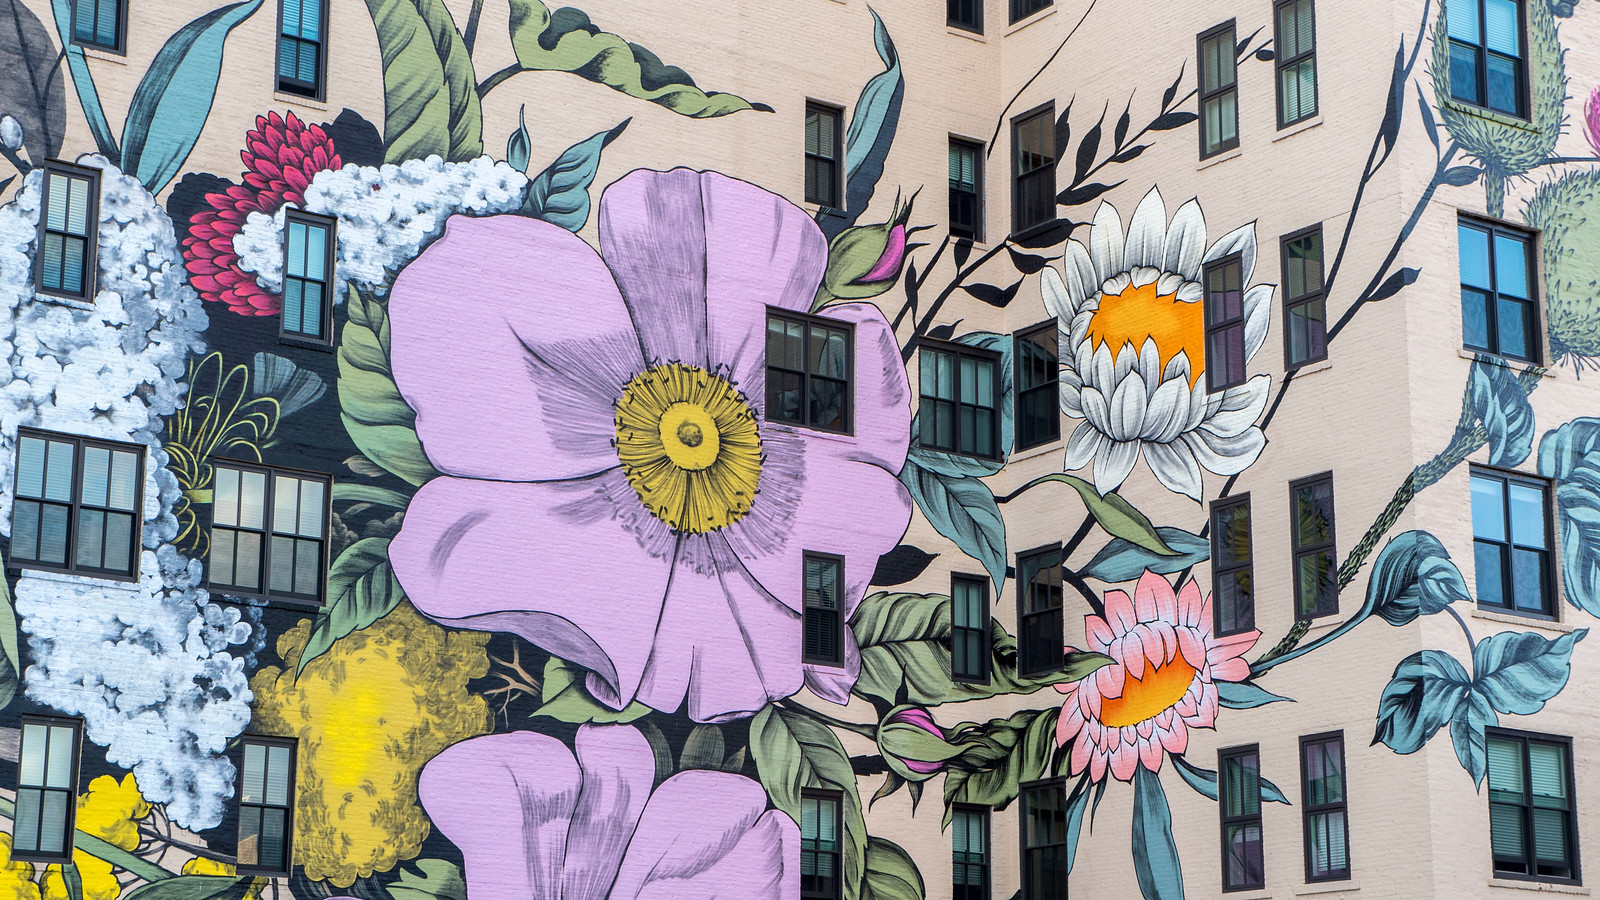 Where to Find Street Art in Buffalo and Niagara Falls, NY - Wildflowers for Buffalo